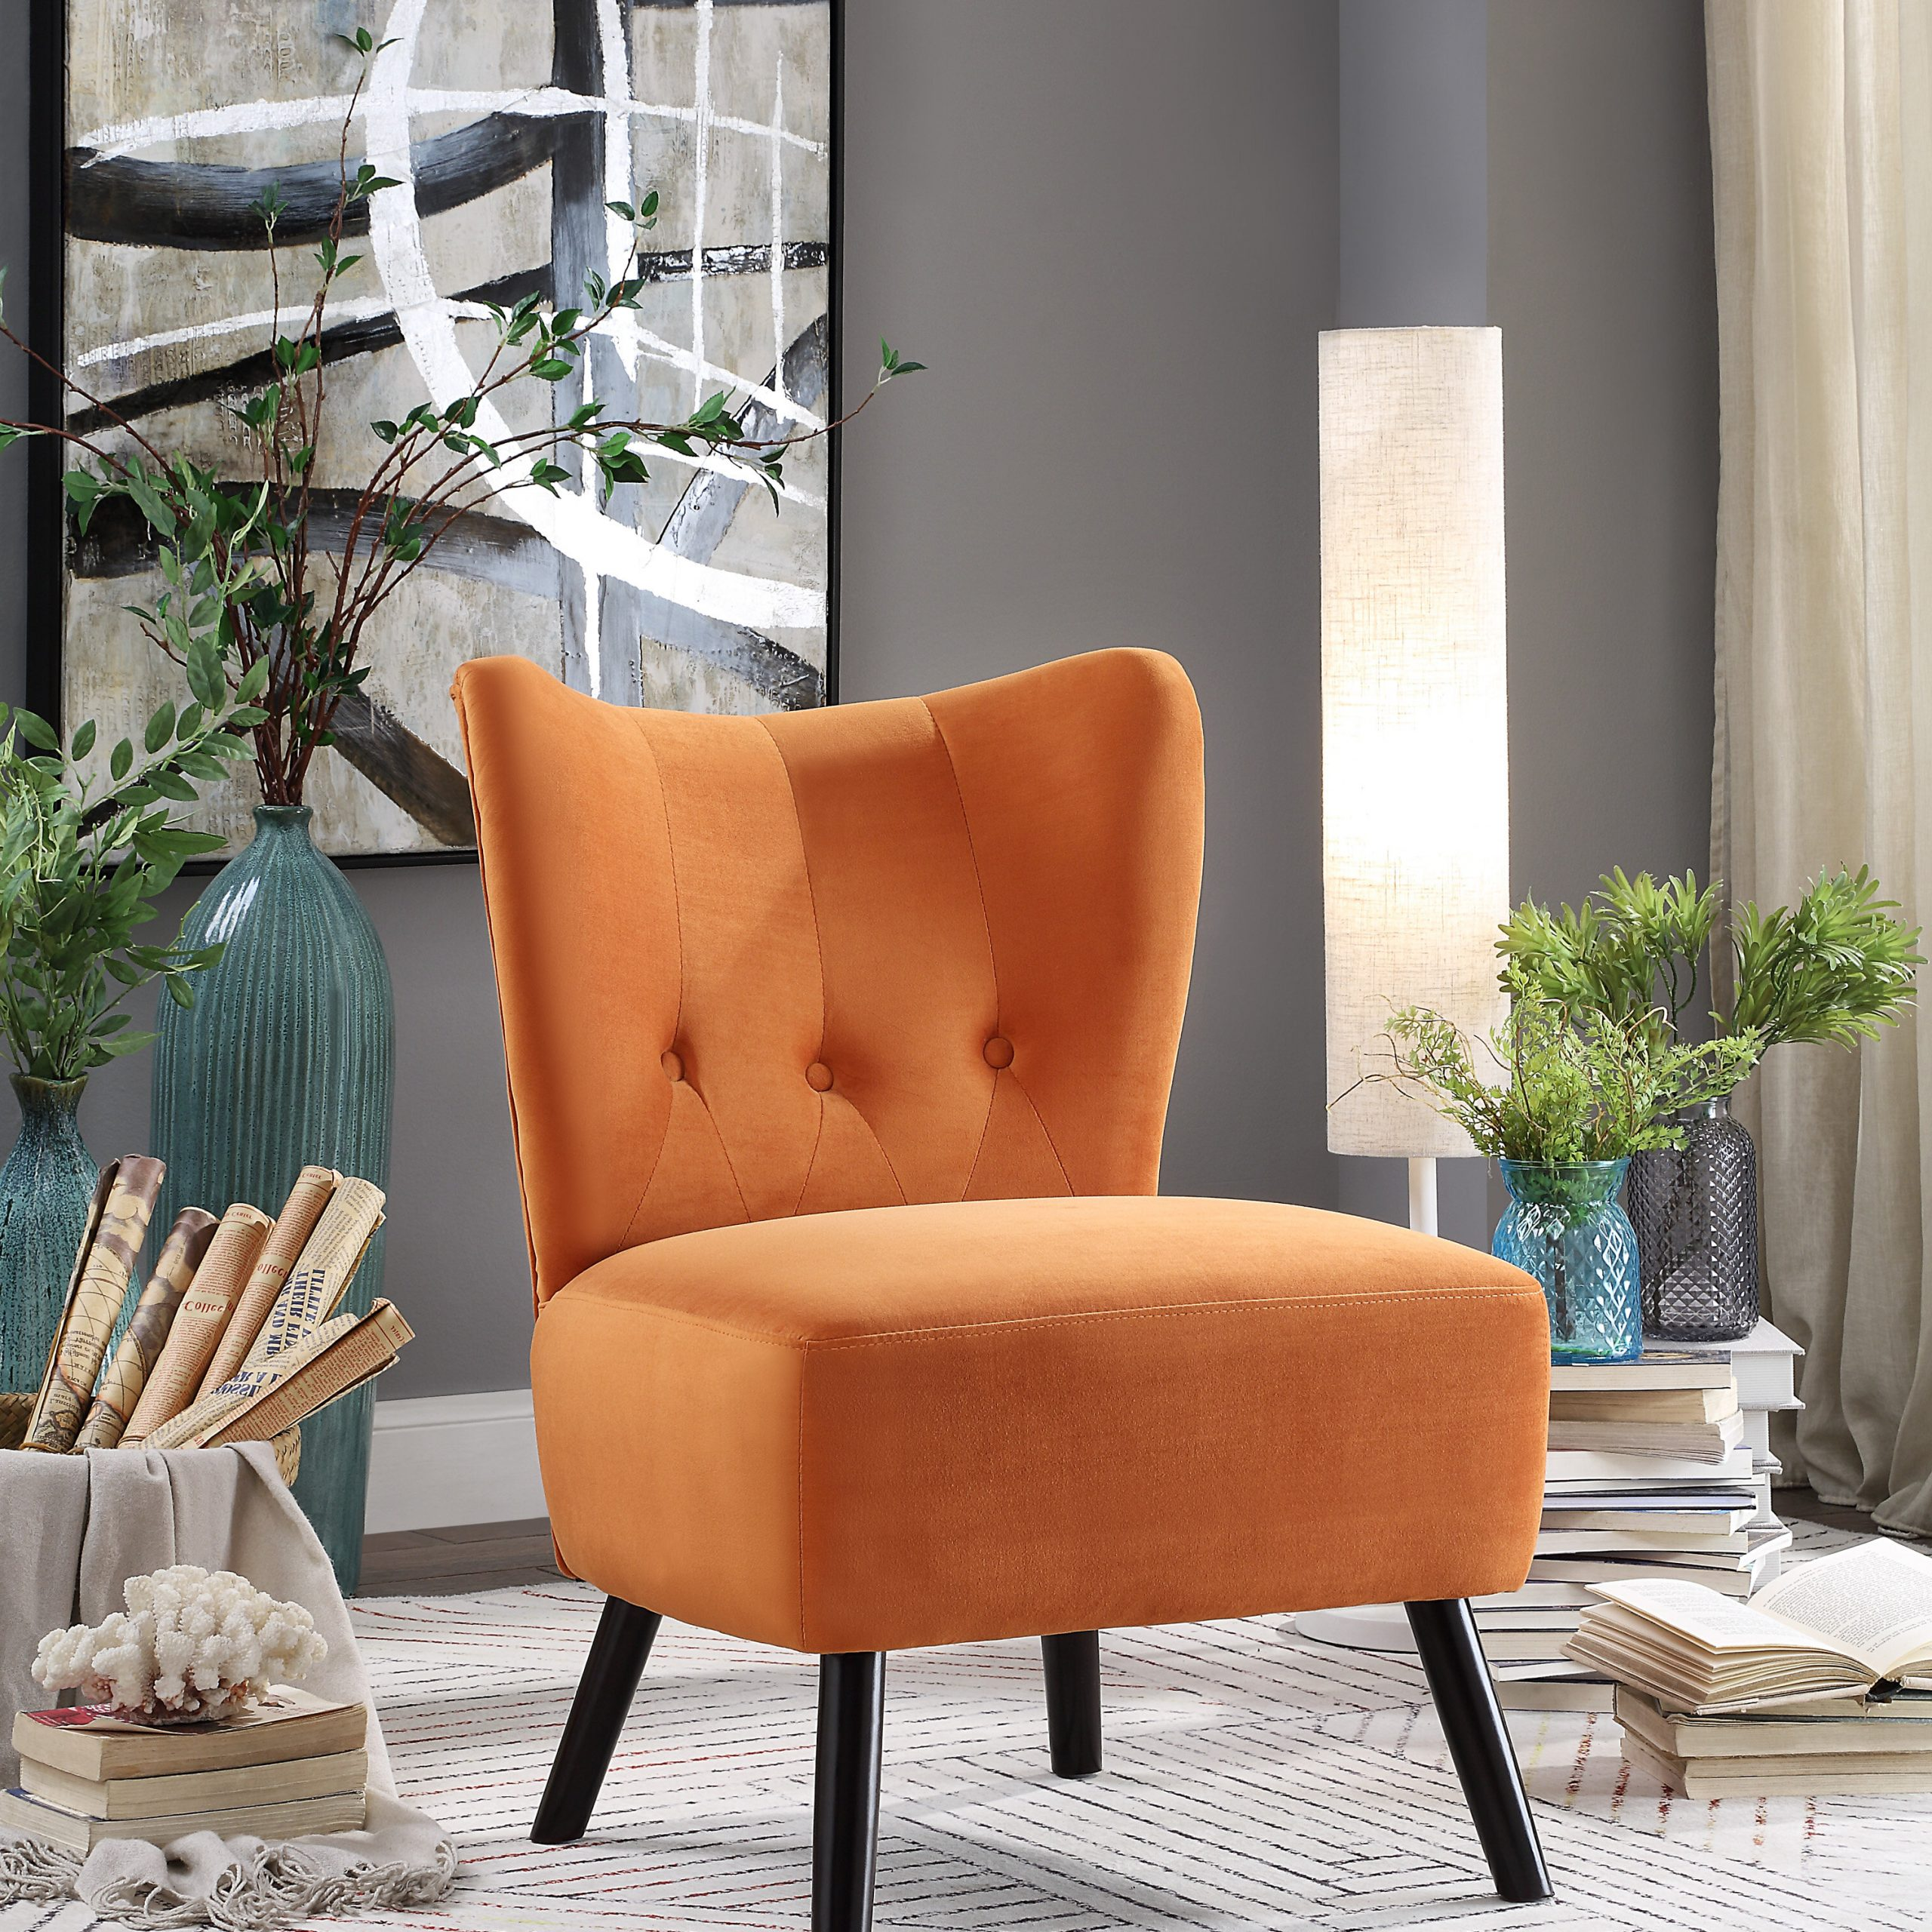 Artressia Barrel Chairs Inside Most Recent Brown Orange Accent Chairs You'll Love In (View 12 of 20)